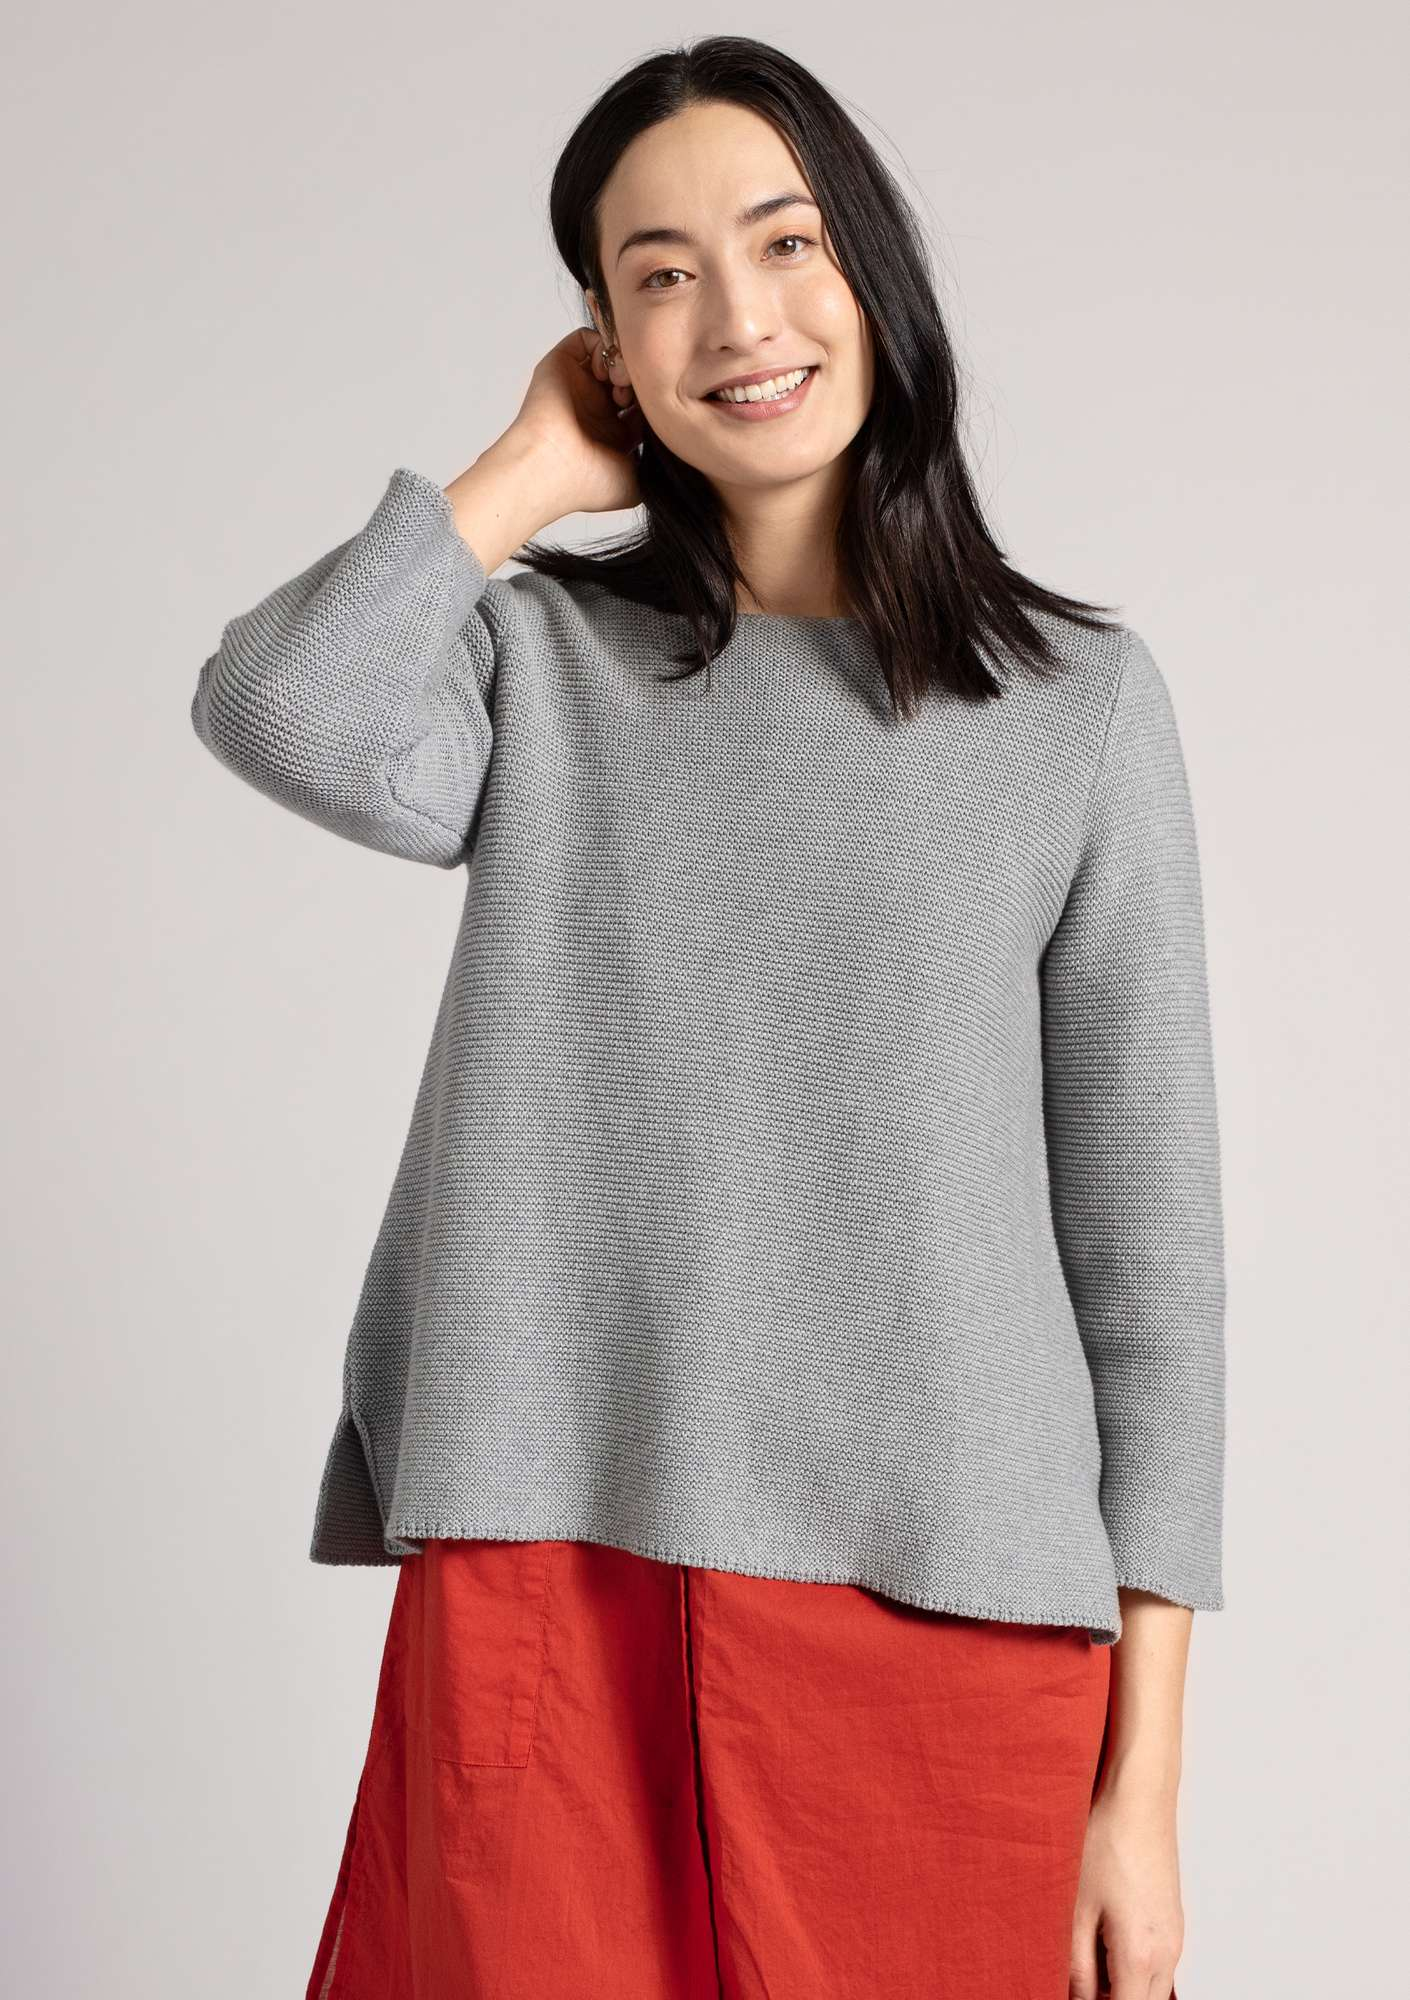 Pull au point mousse en écocoton gris clair chiné